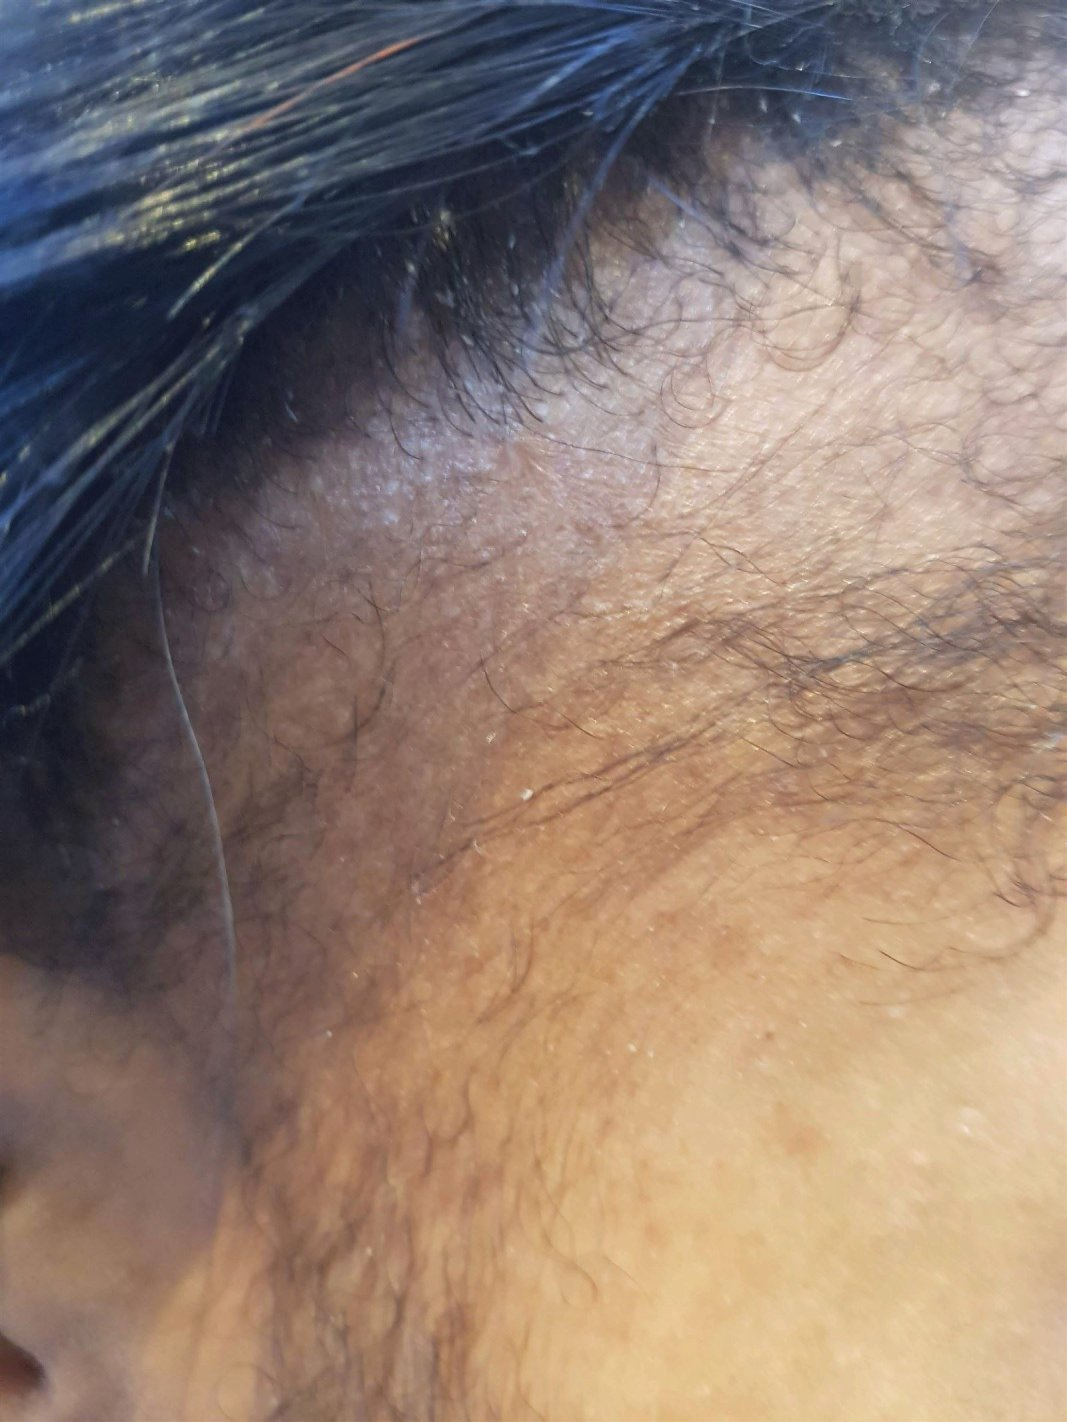 hair loss around the hair line before high frequency treatment